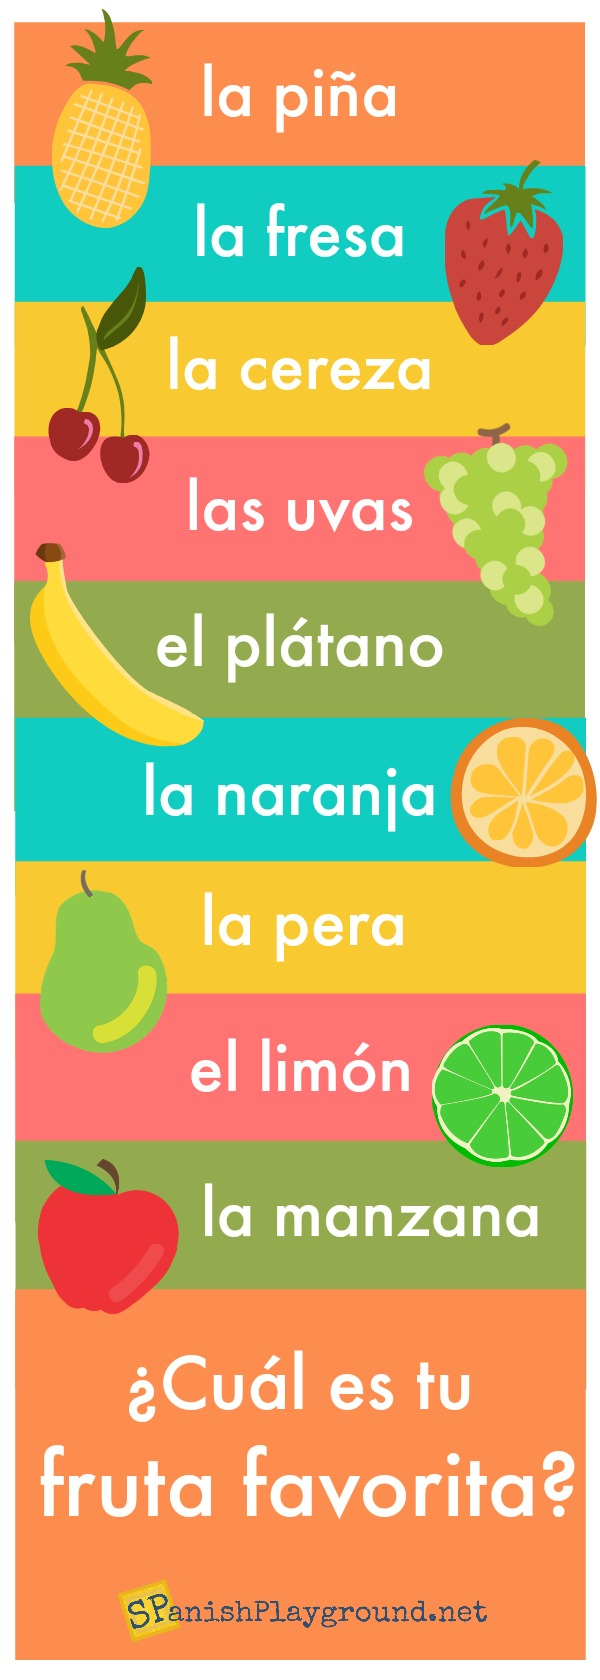 Use this infographic to talk to kids about fruit in Spanish.